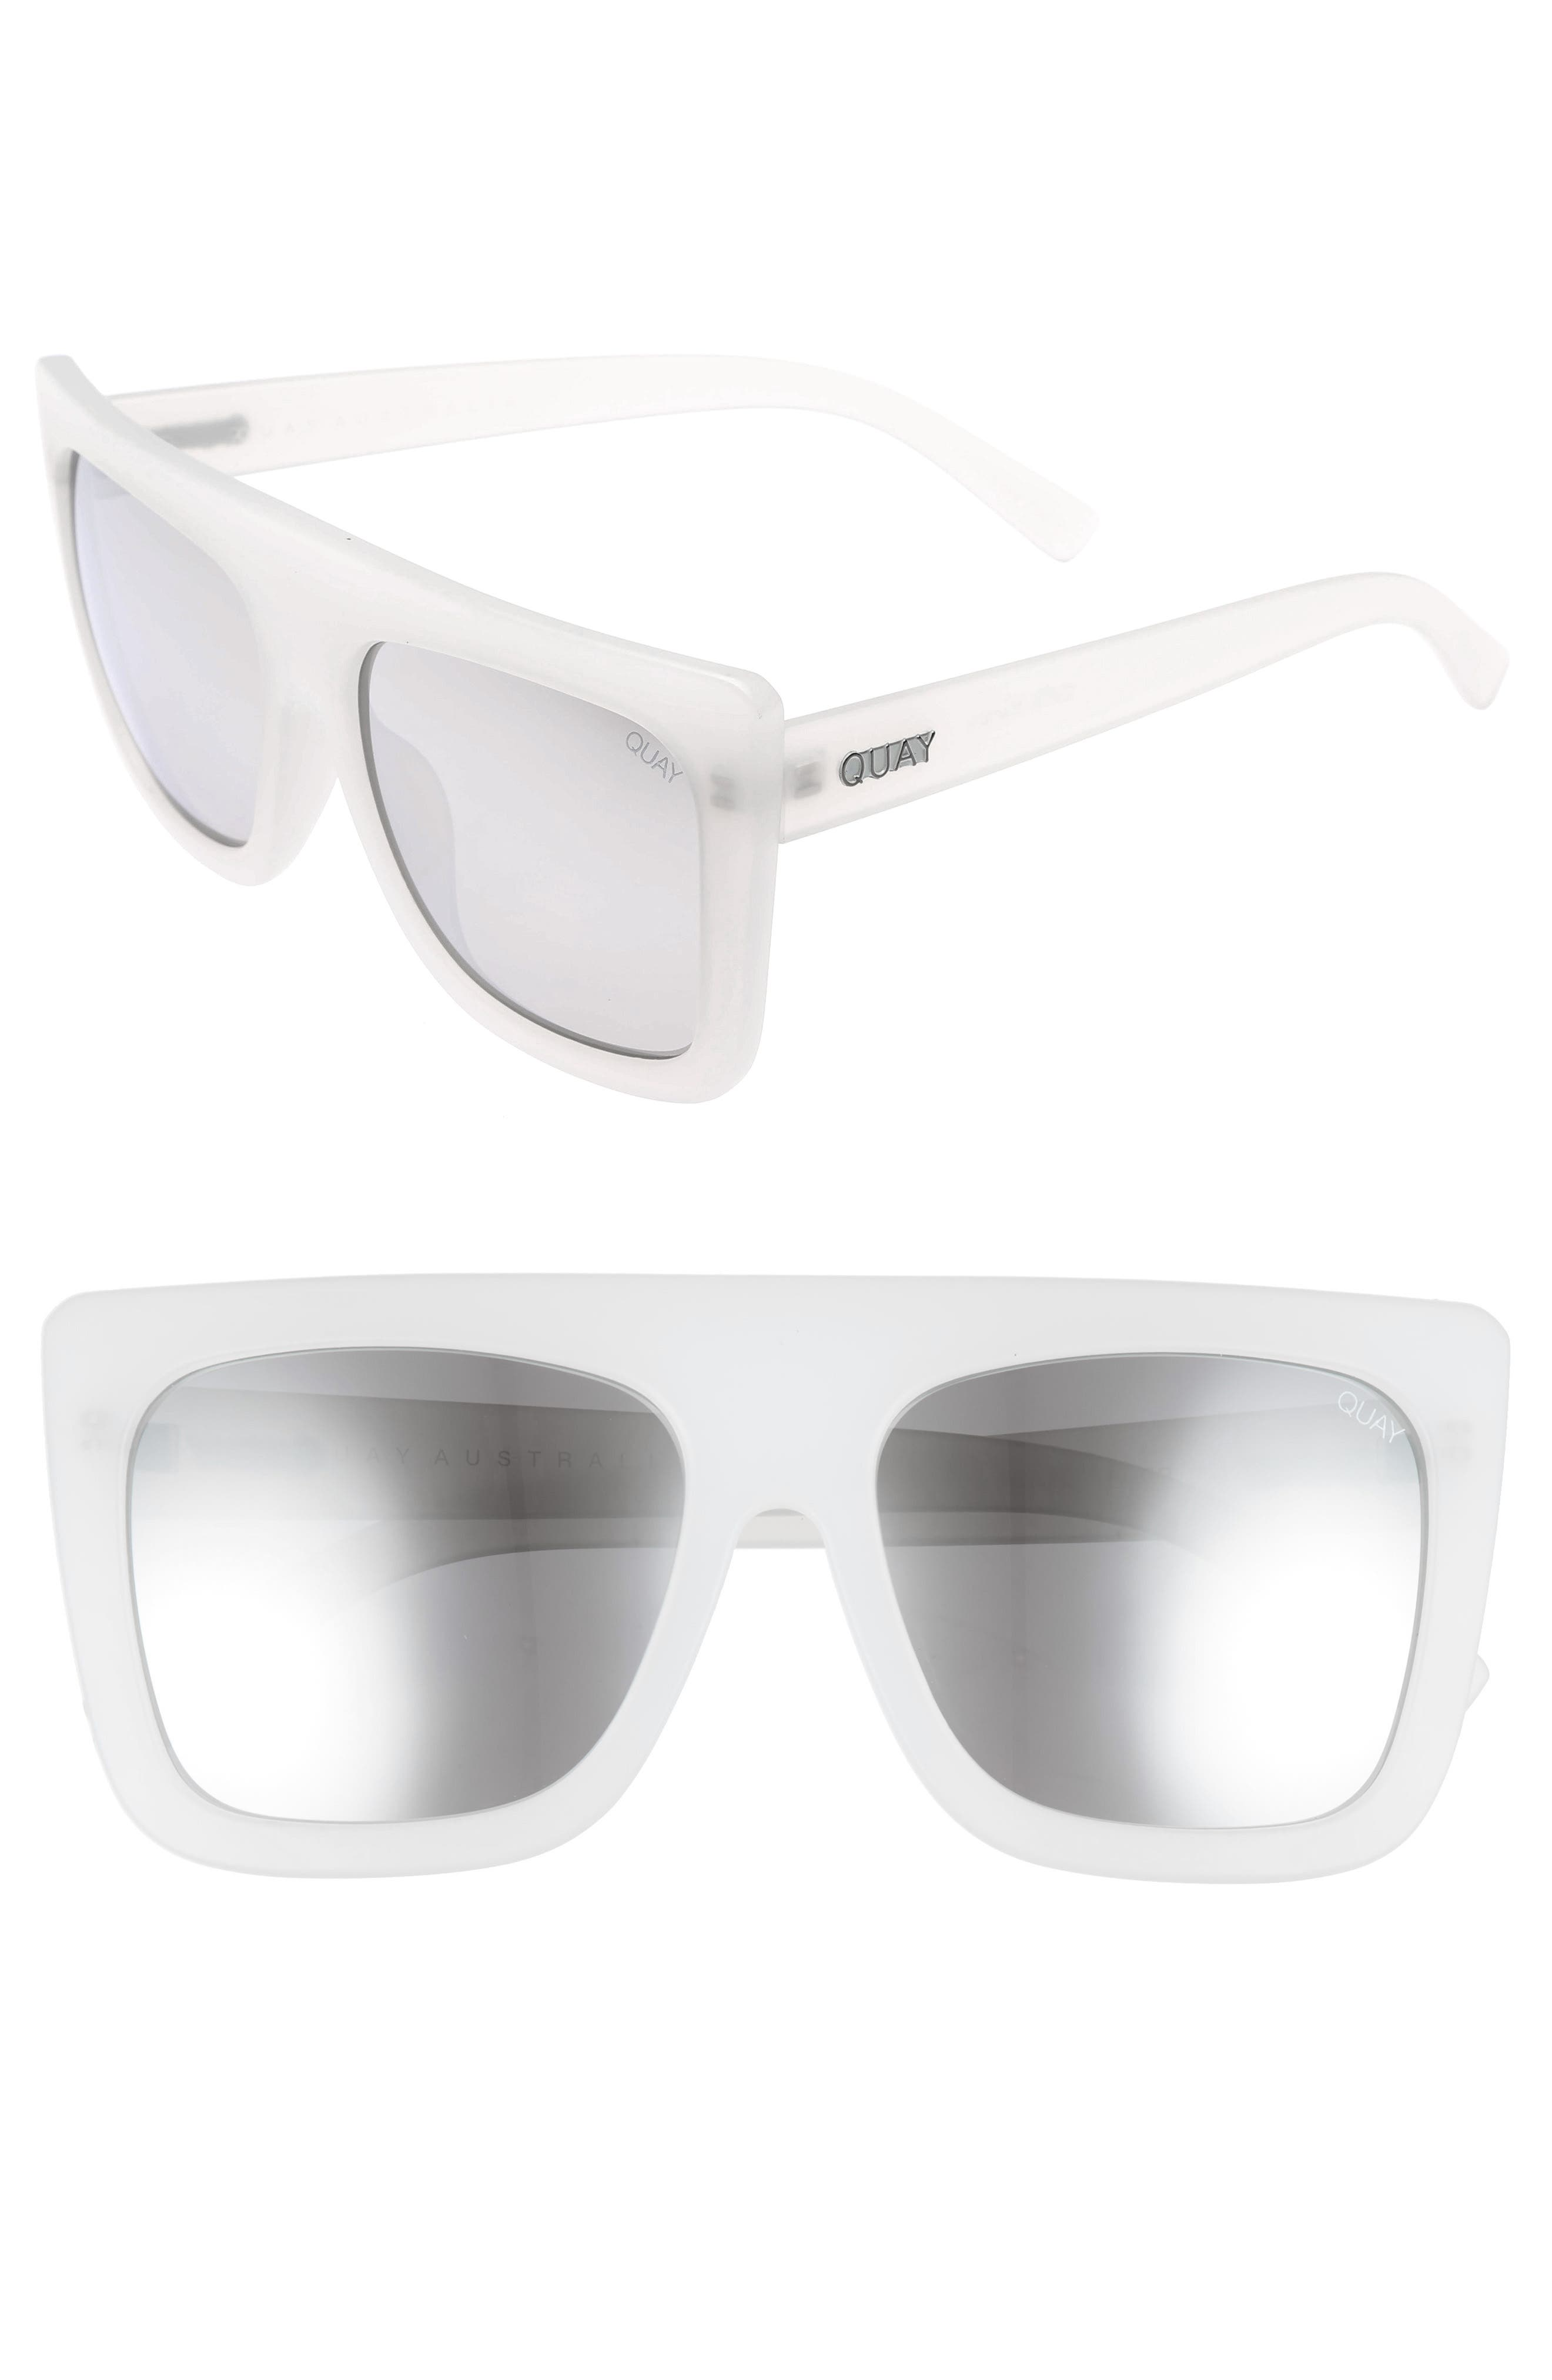 Cafe Racer 60mm Sunglasses,                         Main,                         color, White Silver